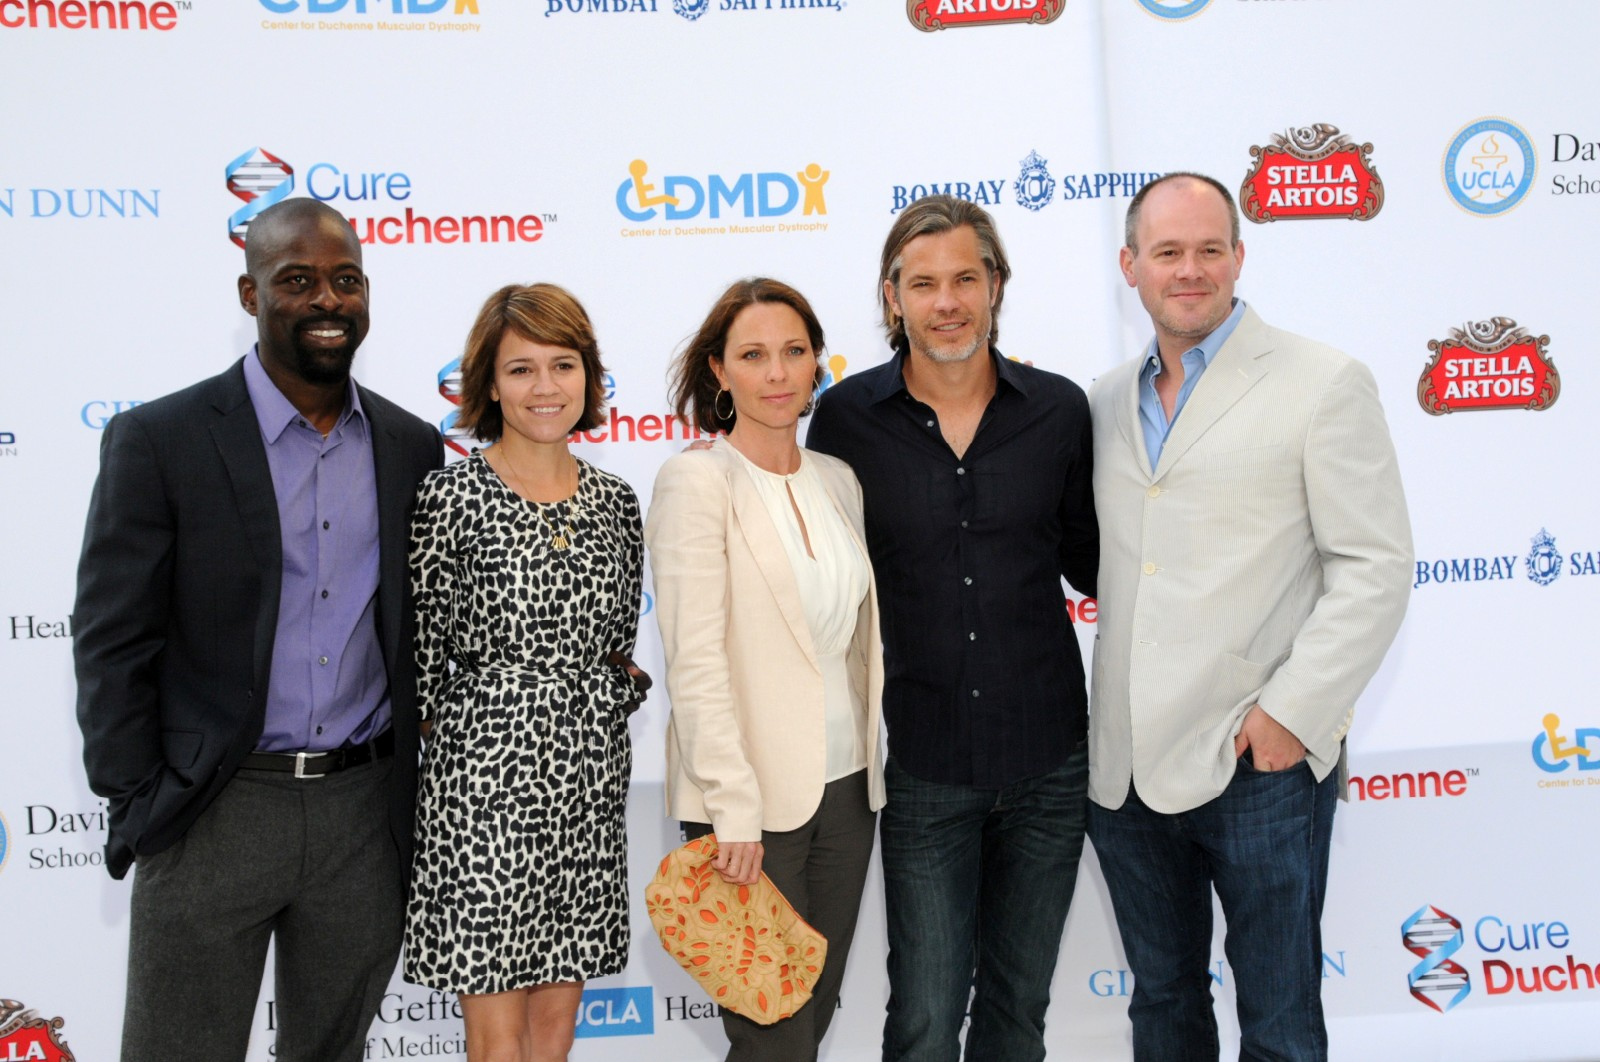 Celebrity poker players arrive on the red carpet. Sterling Brown, Anna Belknap, Kelli Williams, Tim Olyphant, and Rich Eisen